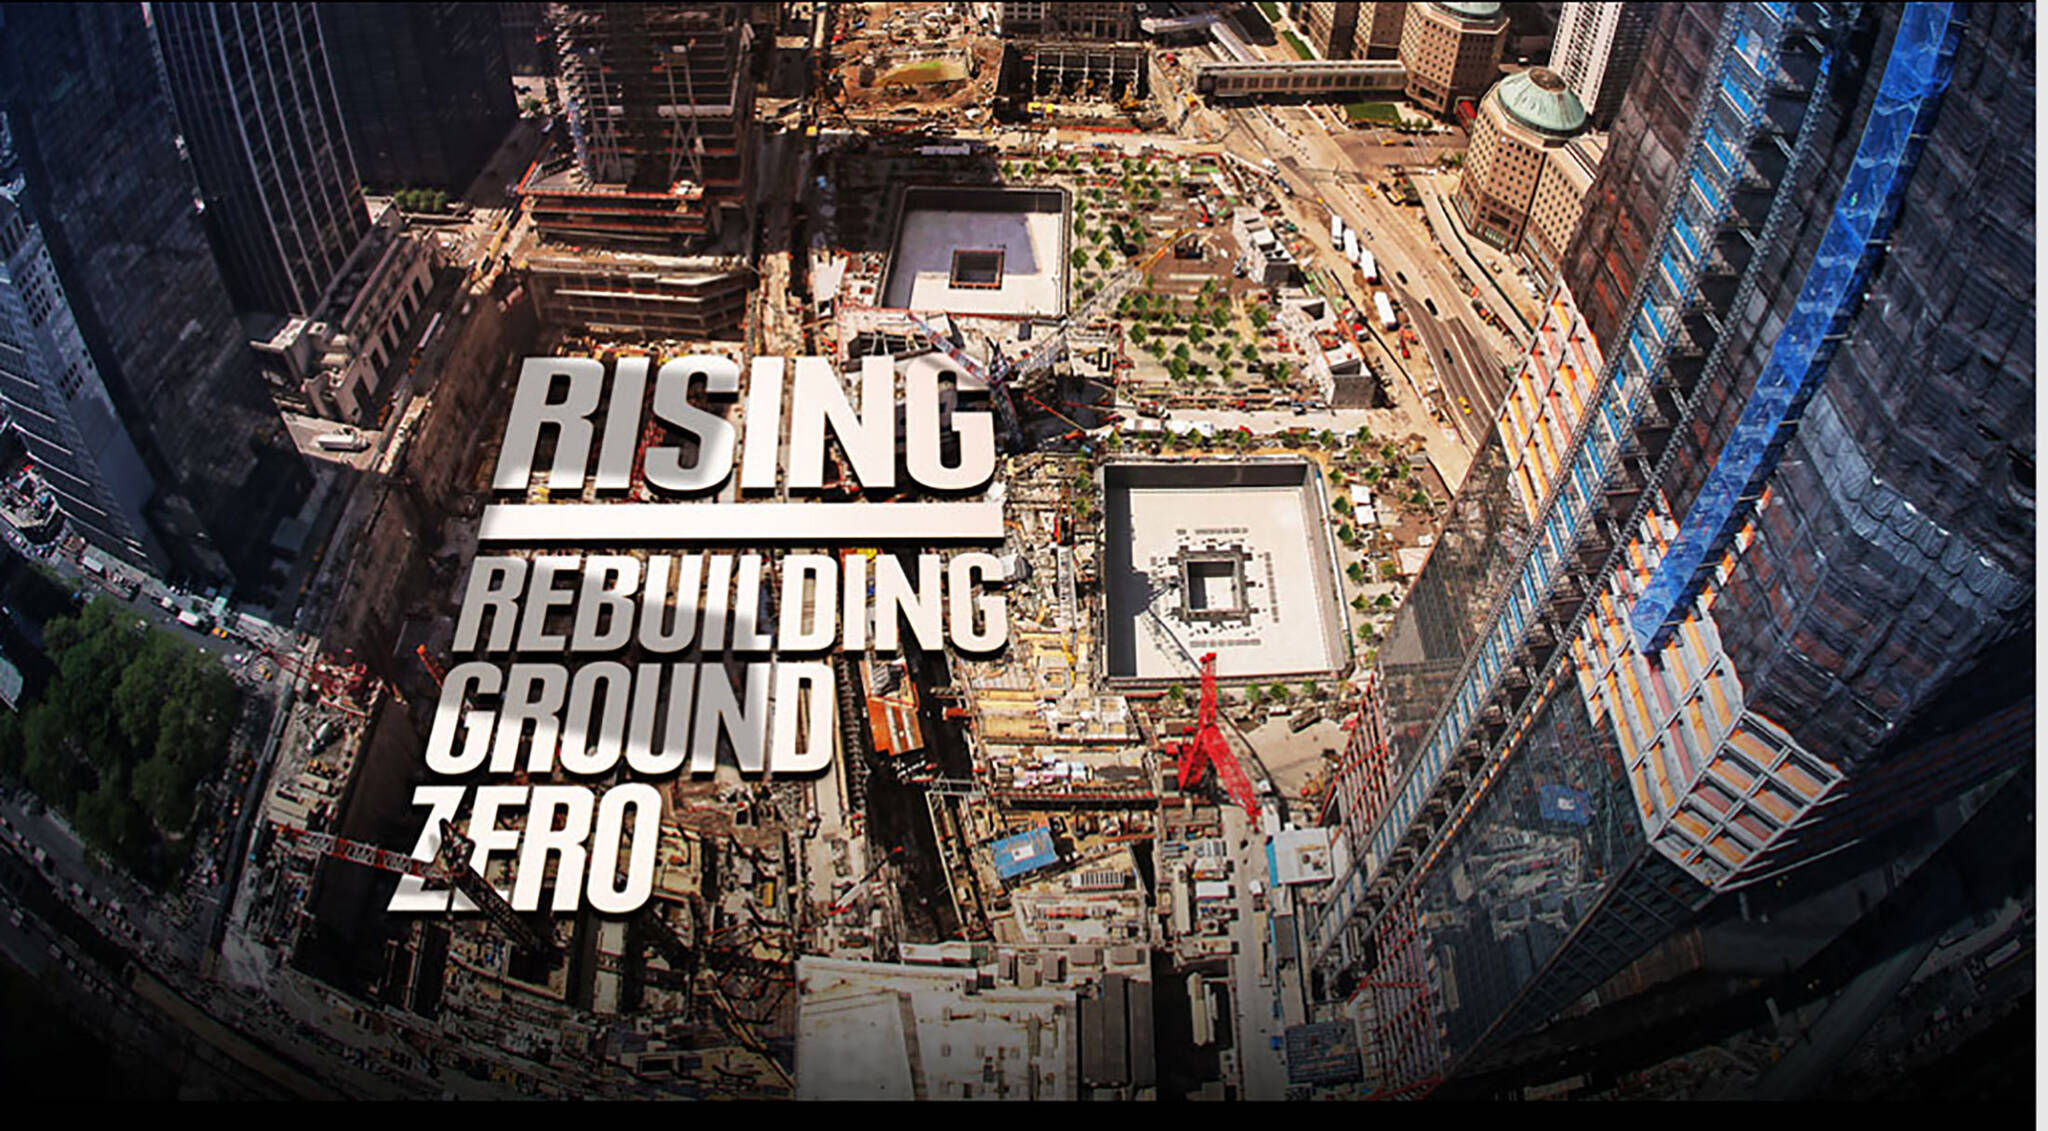 Lettering over the foundations of the Ground Zero area rebuilding project for the Rising: Rebuilding Ground Zero documentary Co-produced by Danny Forster and Steven Spielberg about the rebuilding of the World Trade Center site in the wake of 9/11.